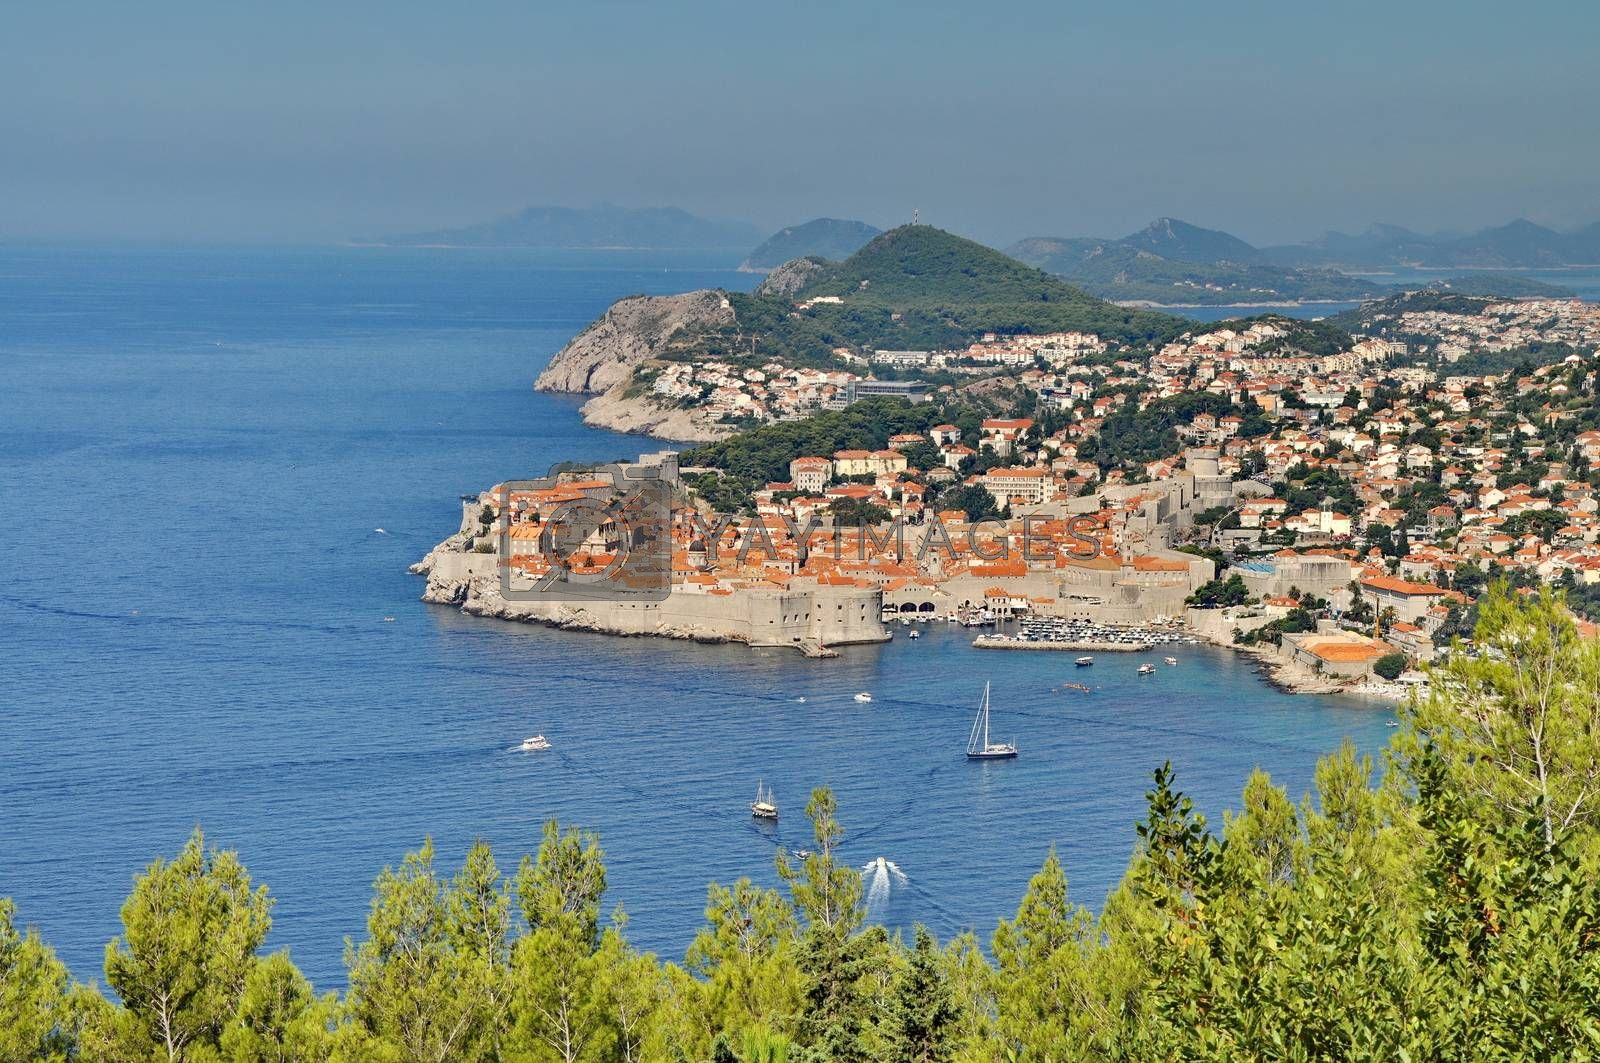 City of Dubrovnik in Croatia from above